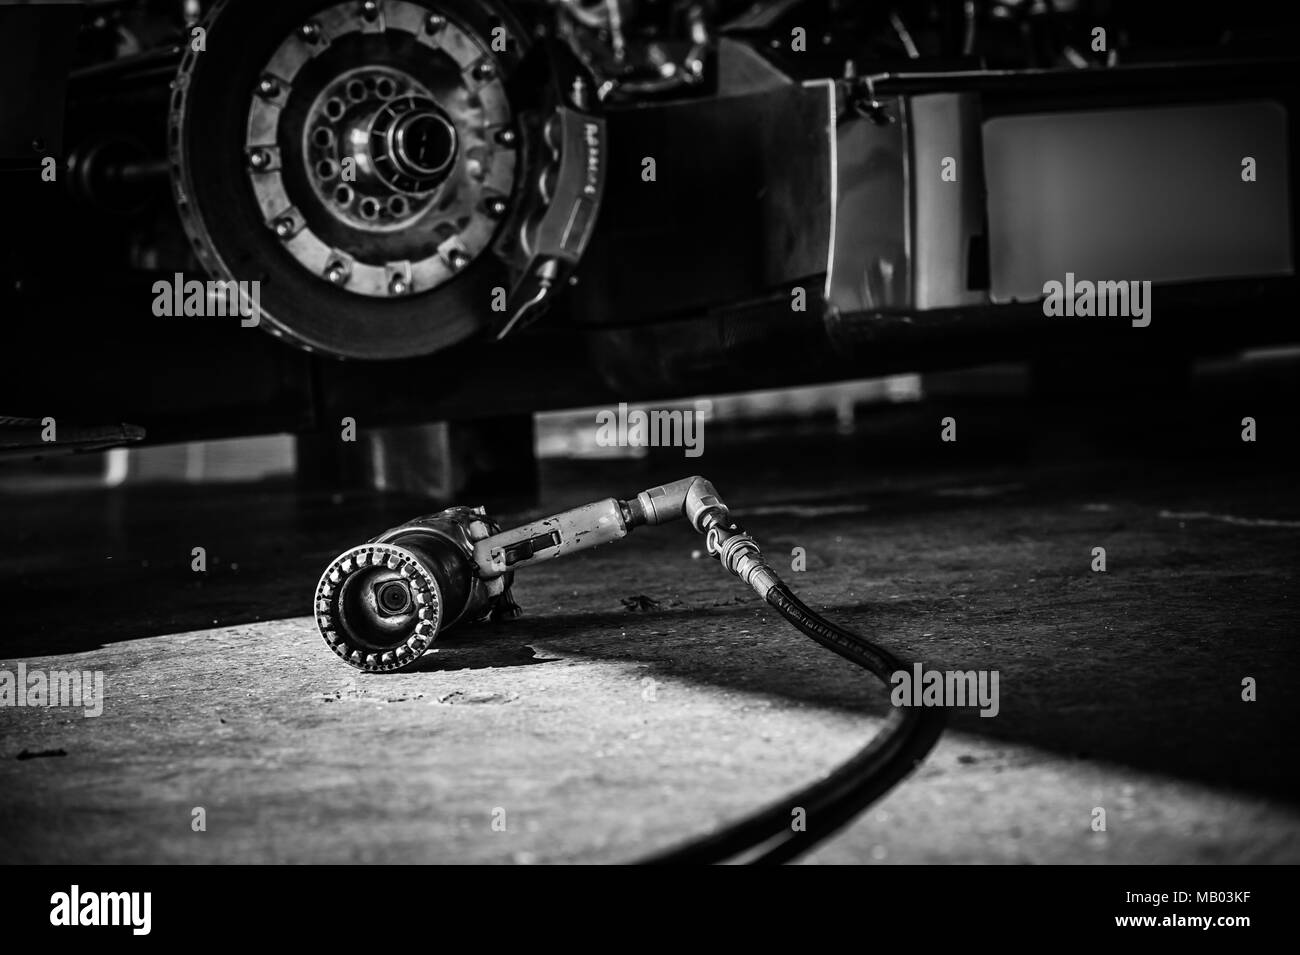 Black & White abstract image of LMP1 Le Mans Prototype wheel gun on Pit Garage floor during Master Historic Racing Test Day at Brands Hatch Circuit - Stock Image